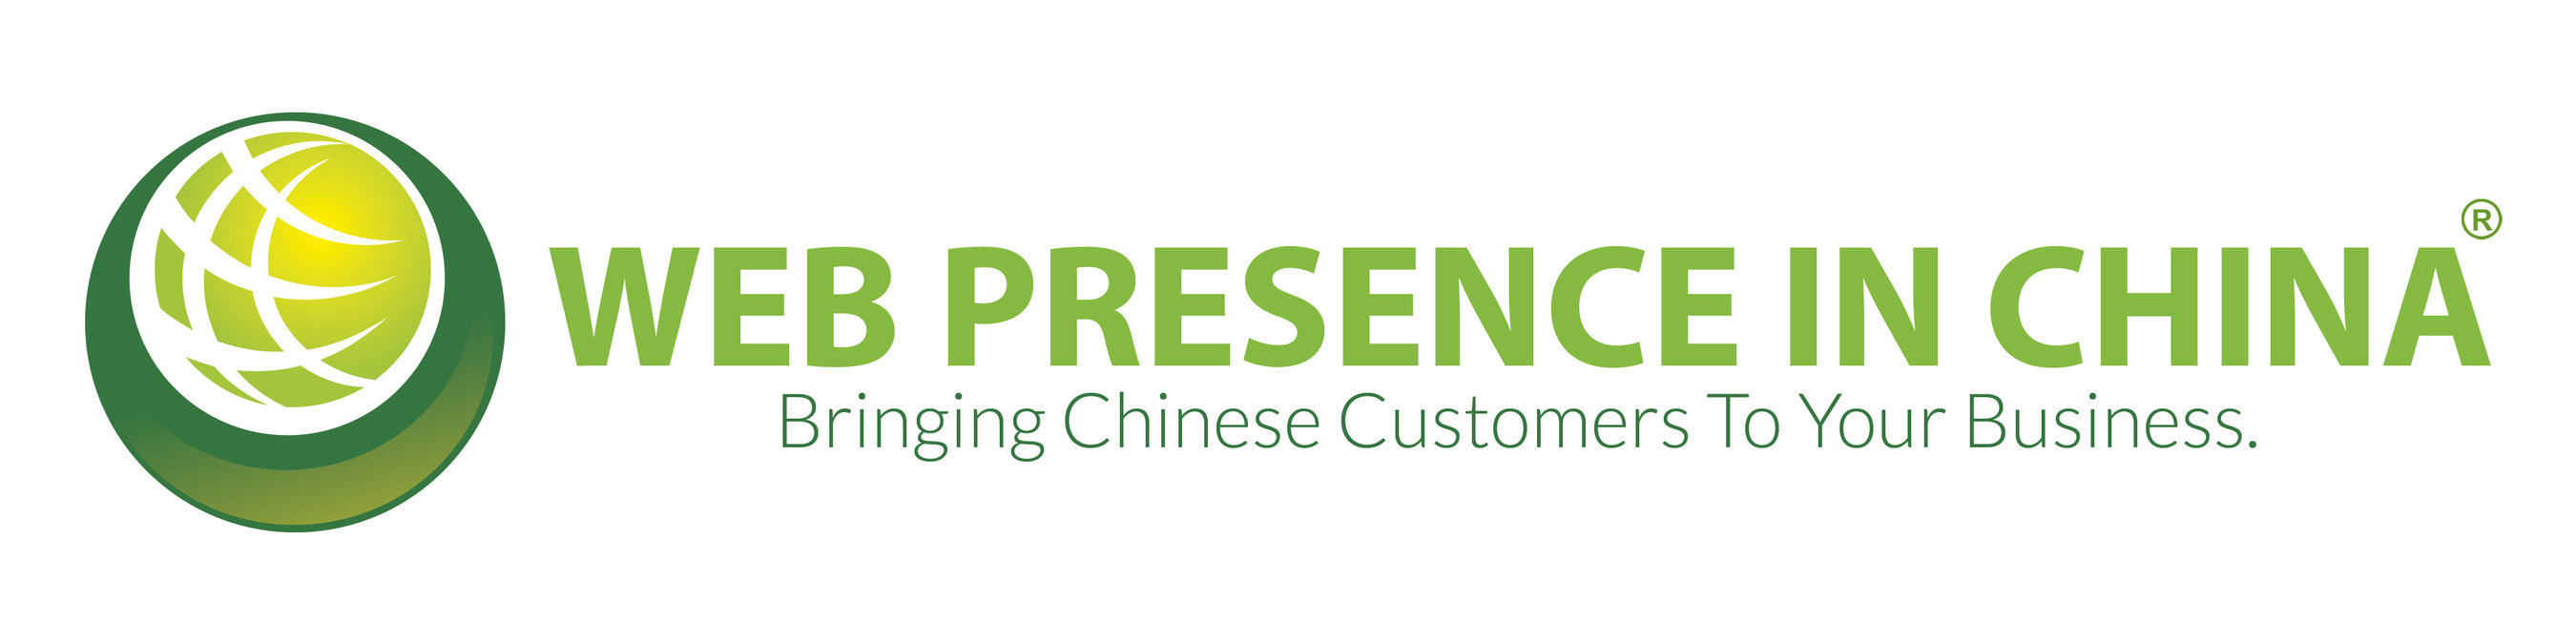 China Trademark Protection: Web Presence In China Achieves Near Perfect Record Online